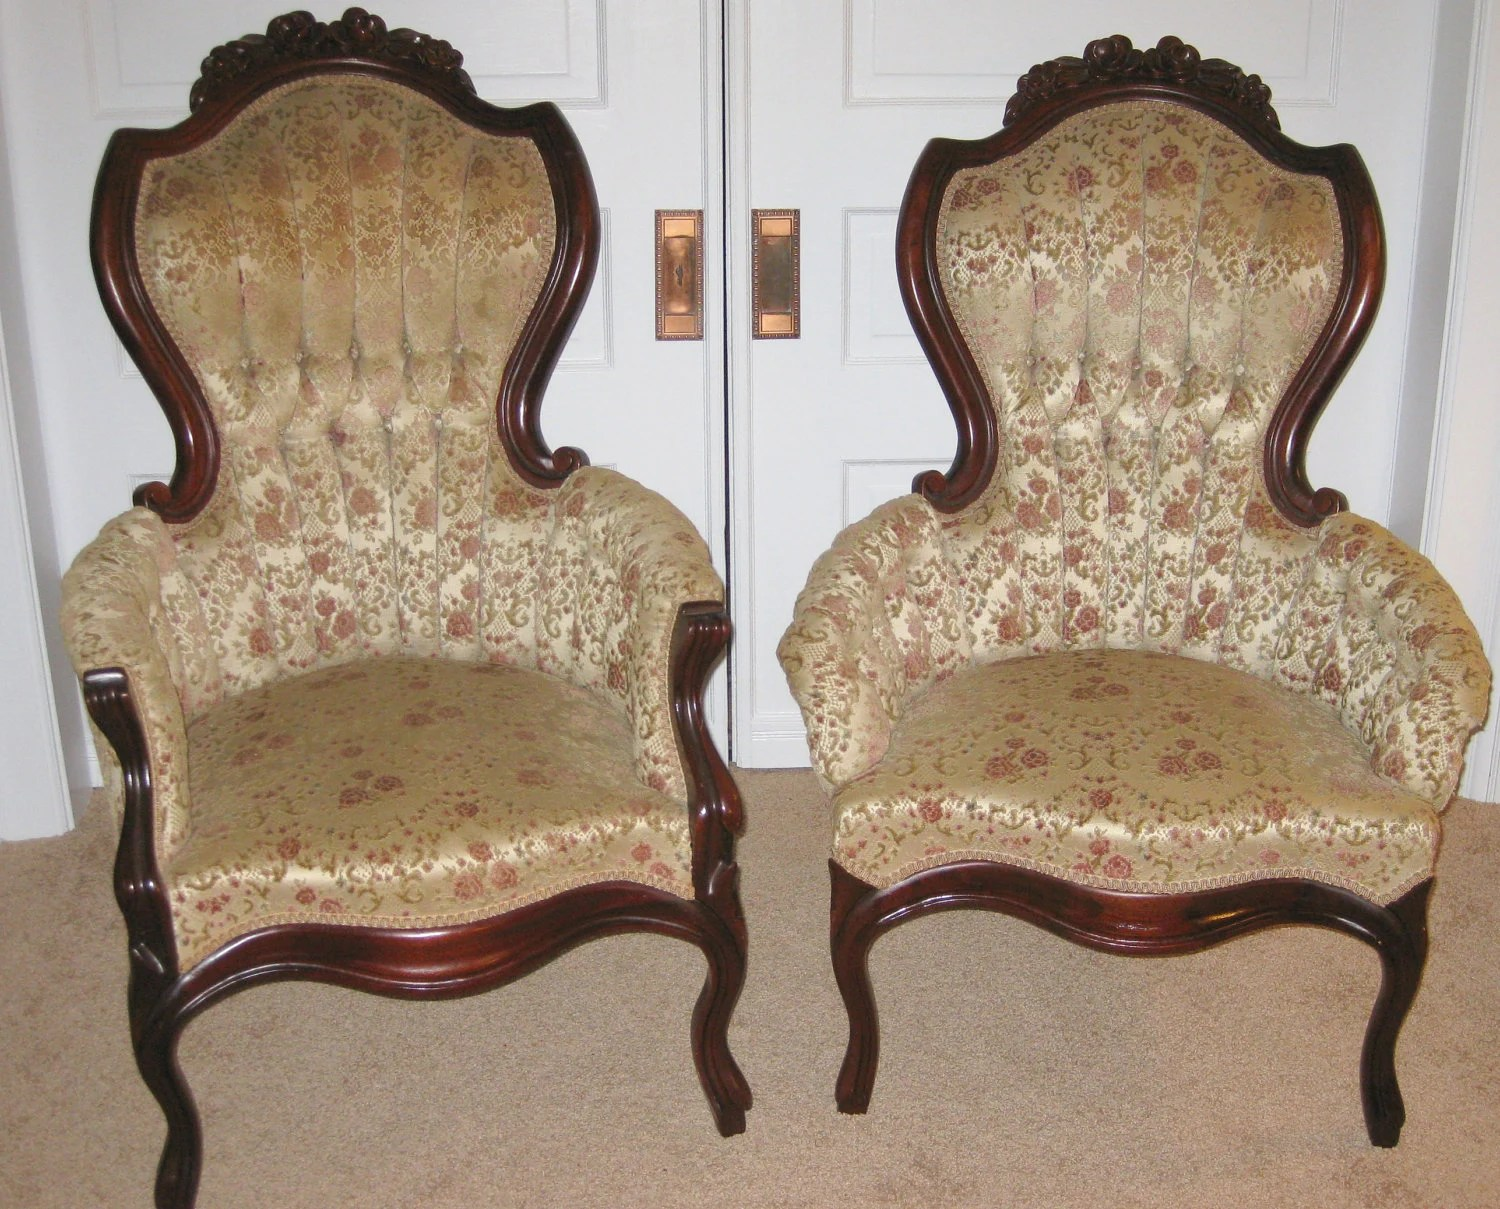 King Chairs Vintage Victorian King And Queen Chairs